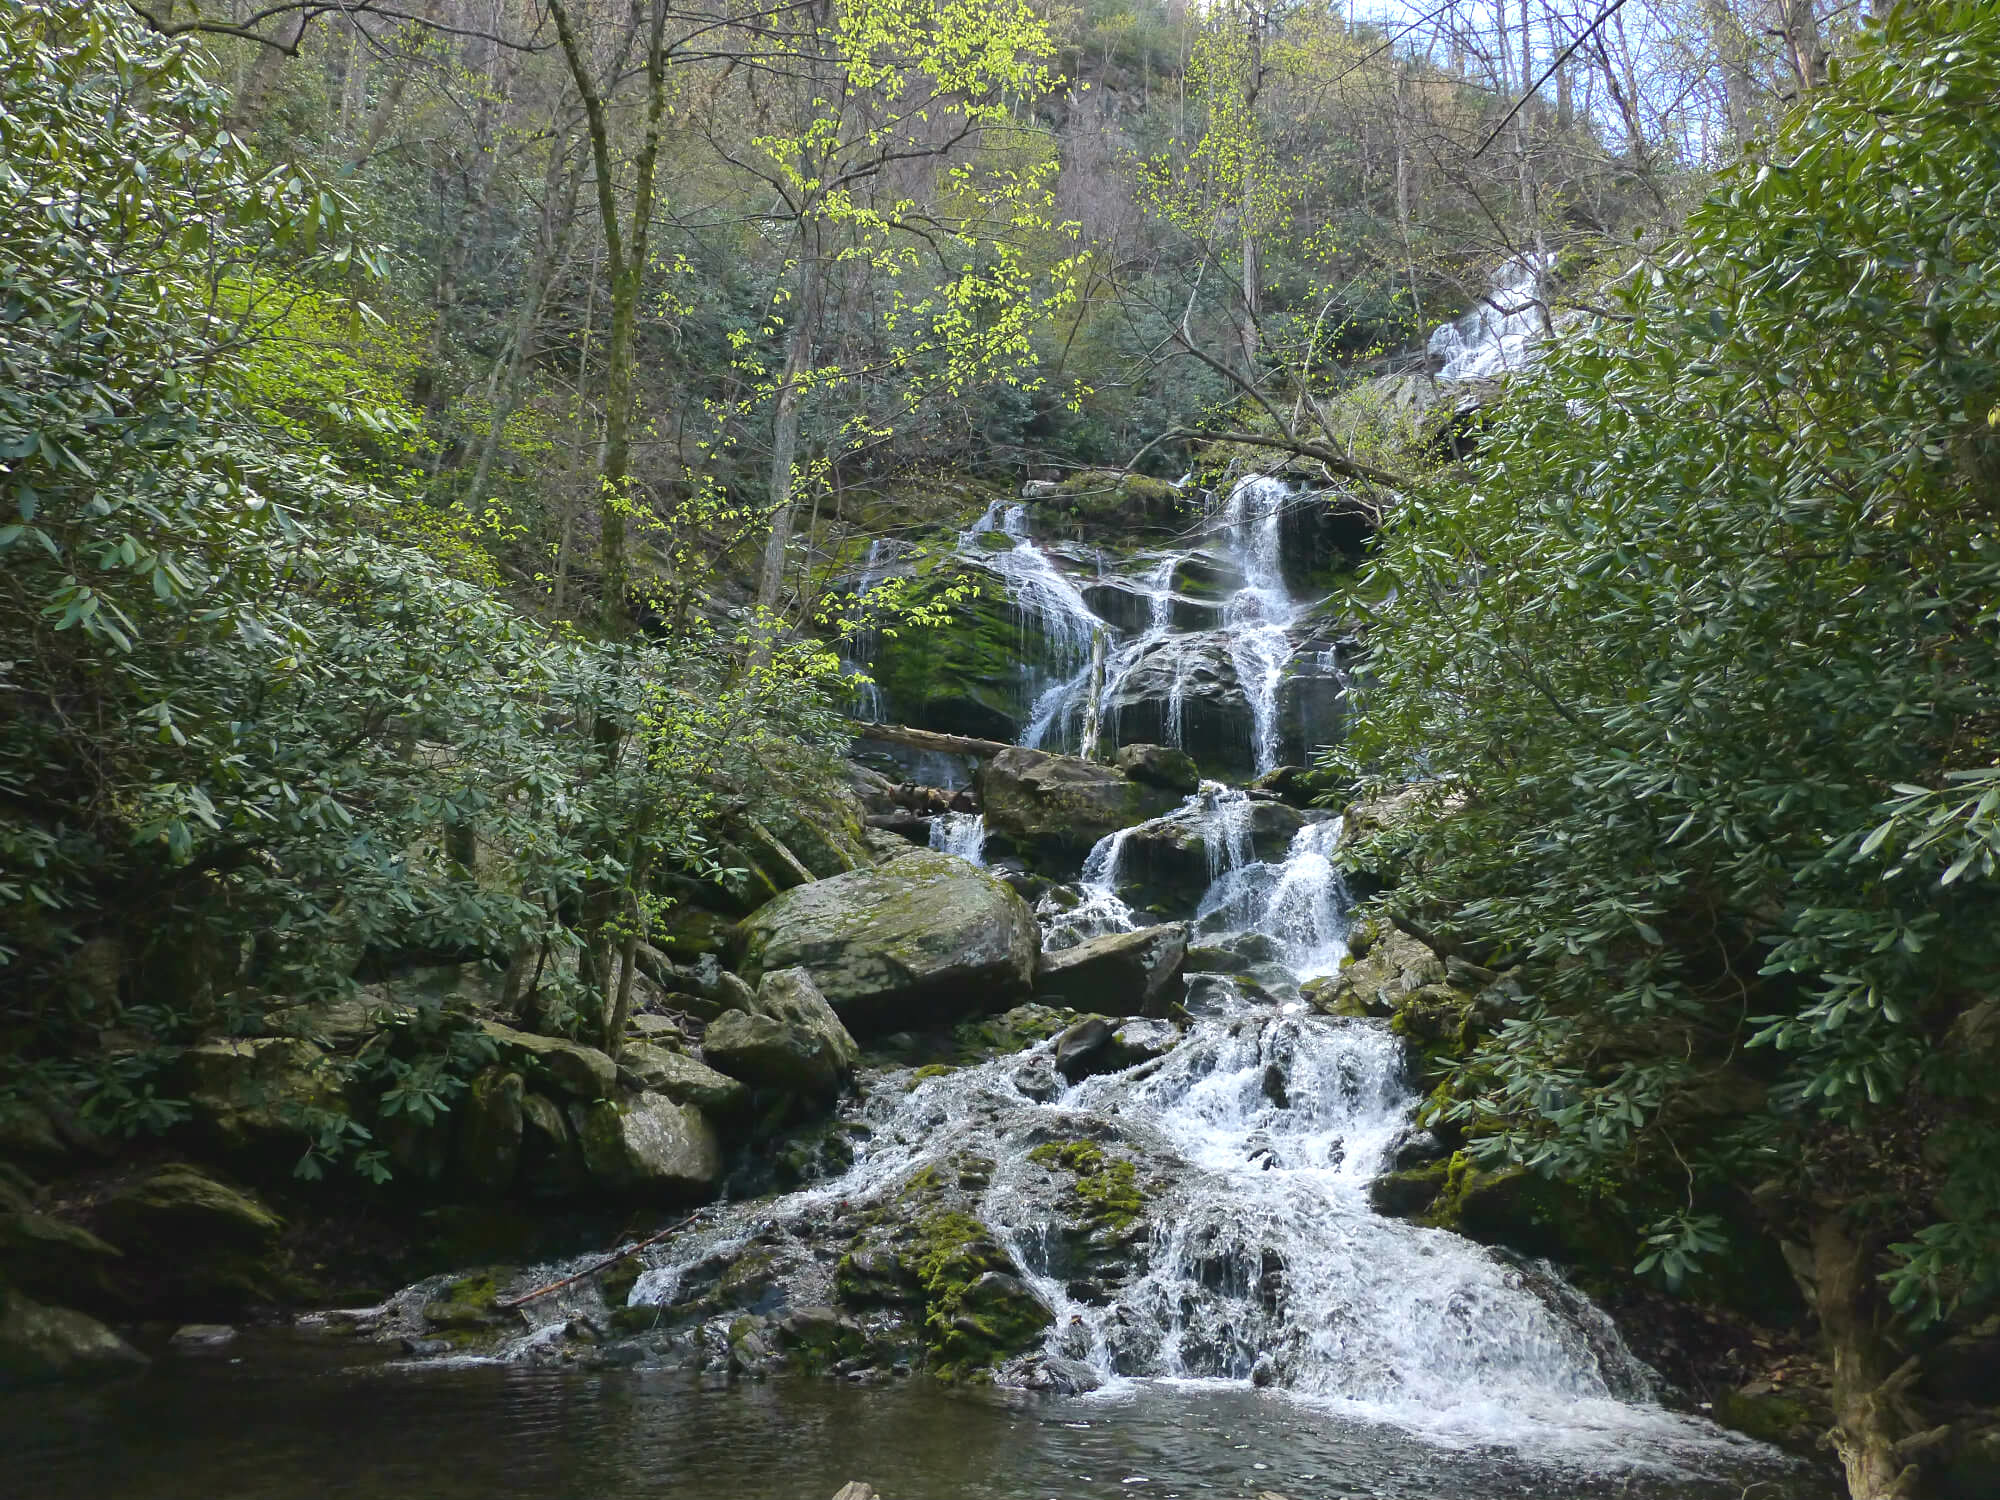 Water cascading down several large boulders with trees and other foliage around it